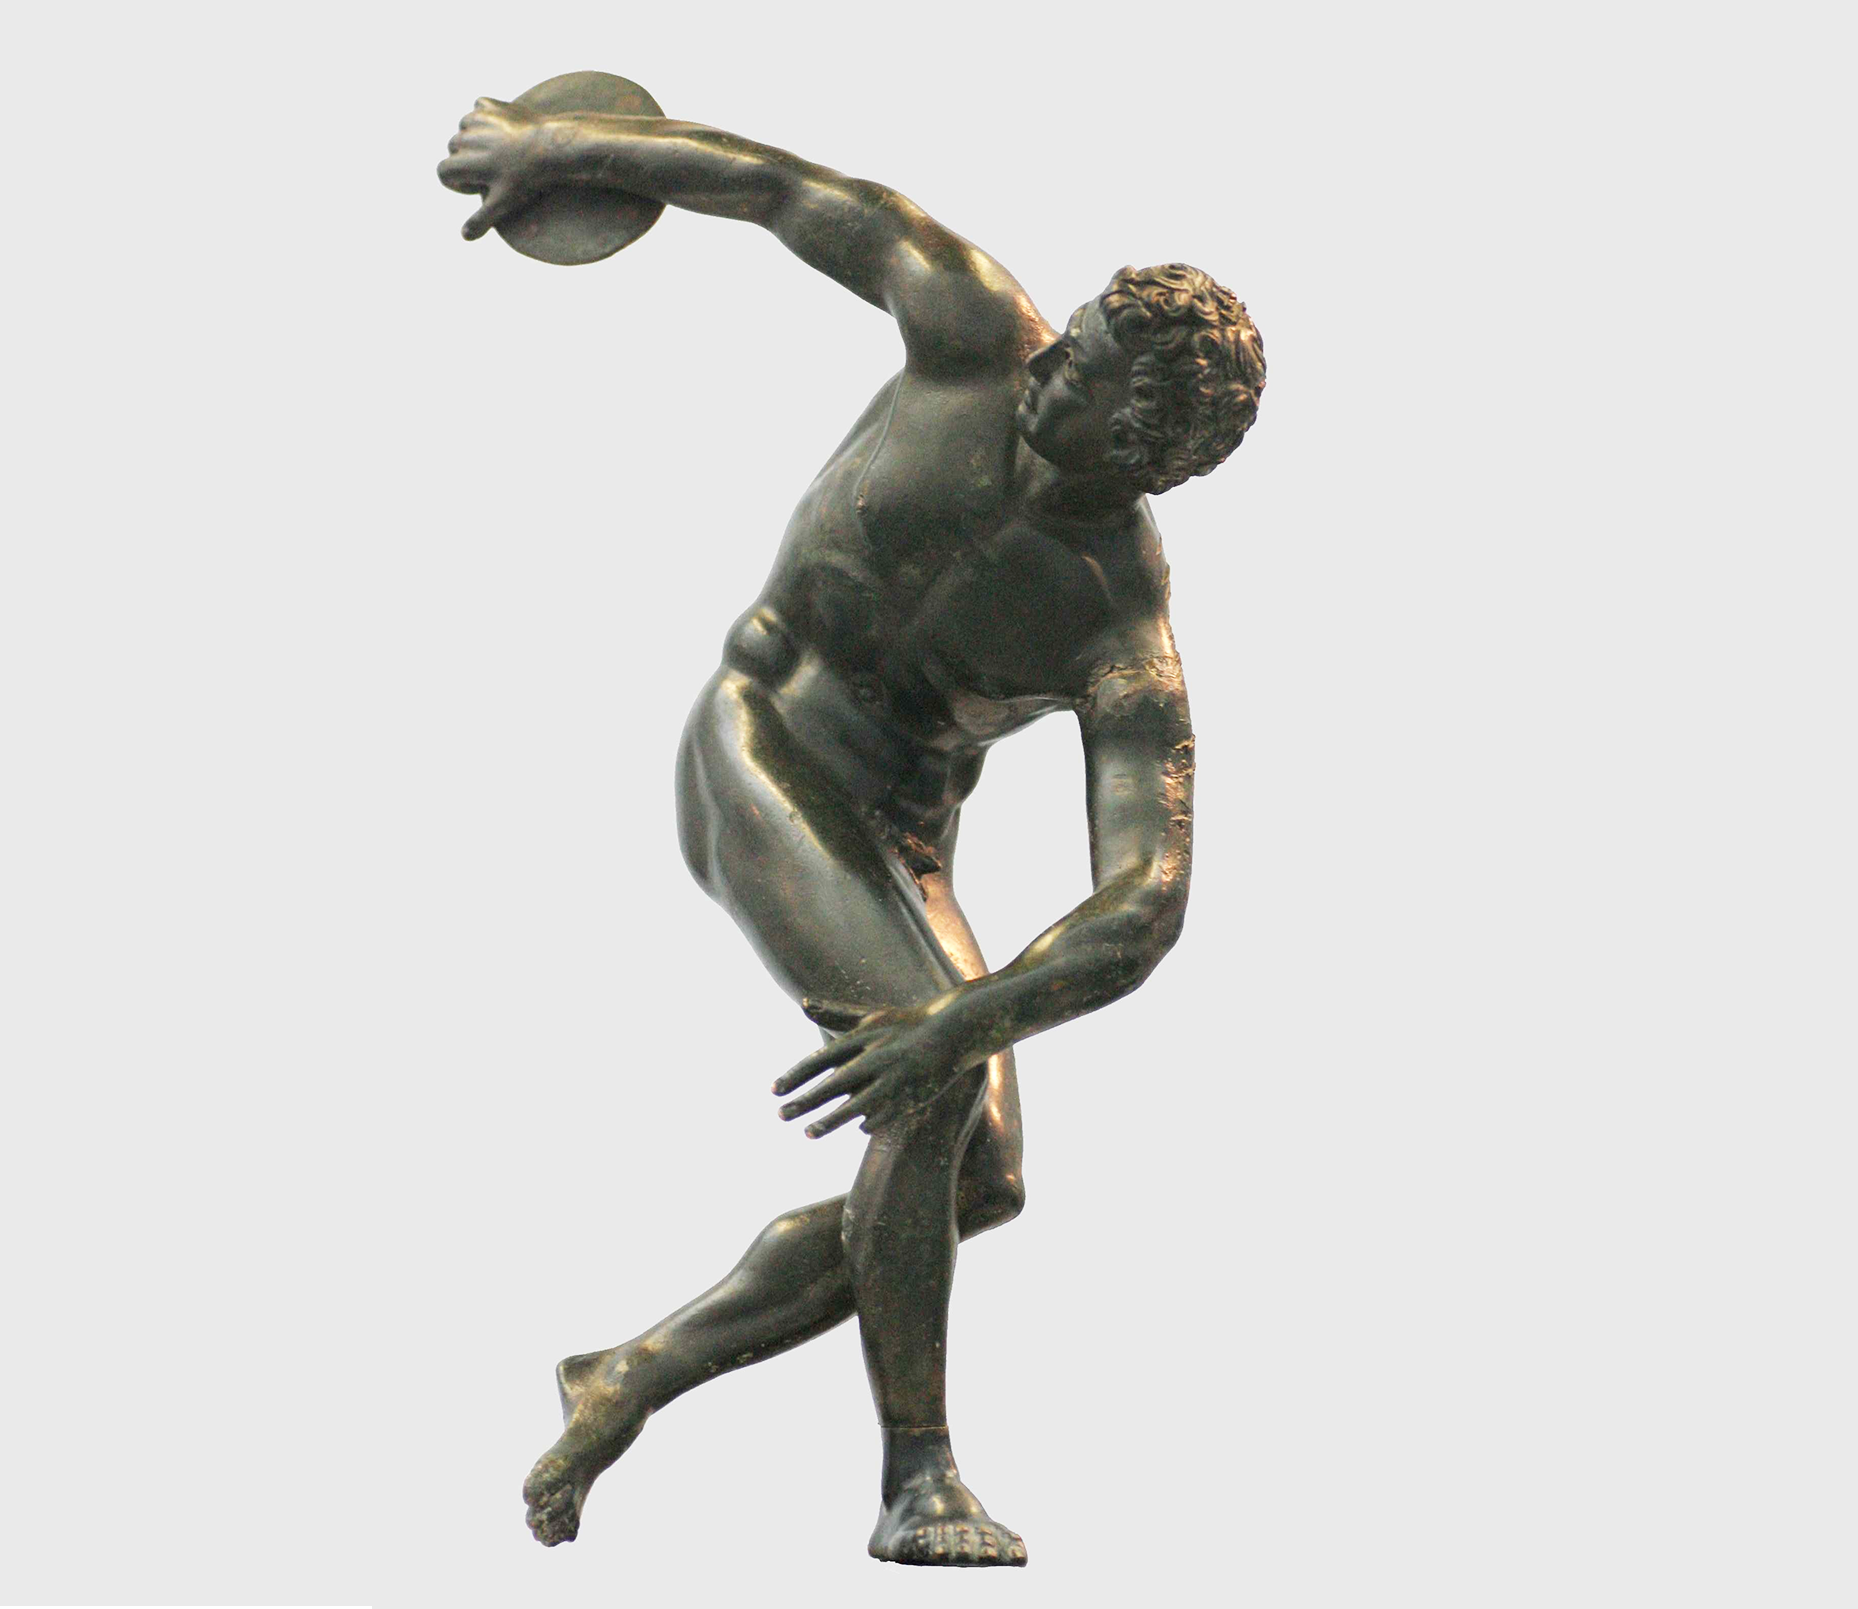 statues for sale of myron discus thrower